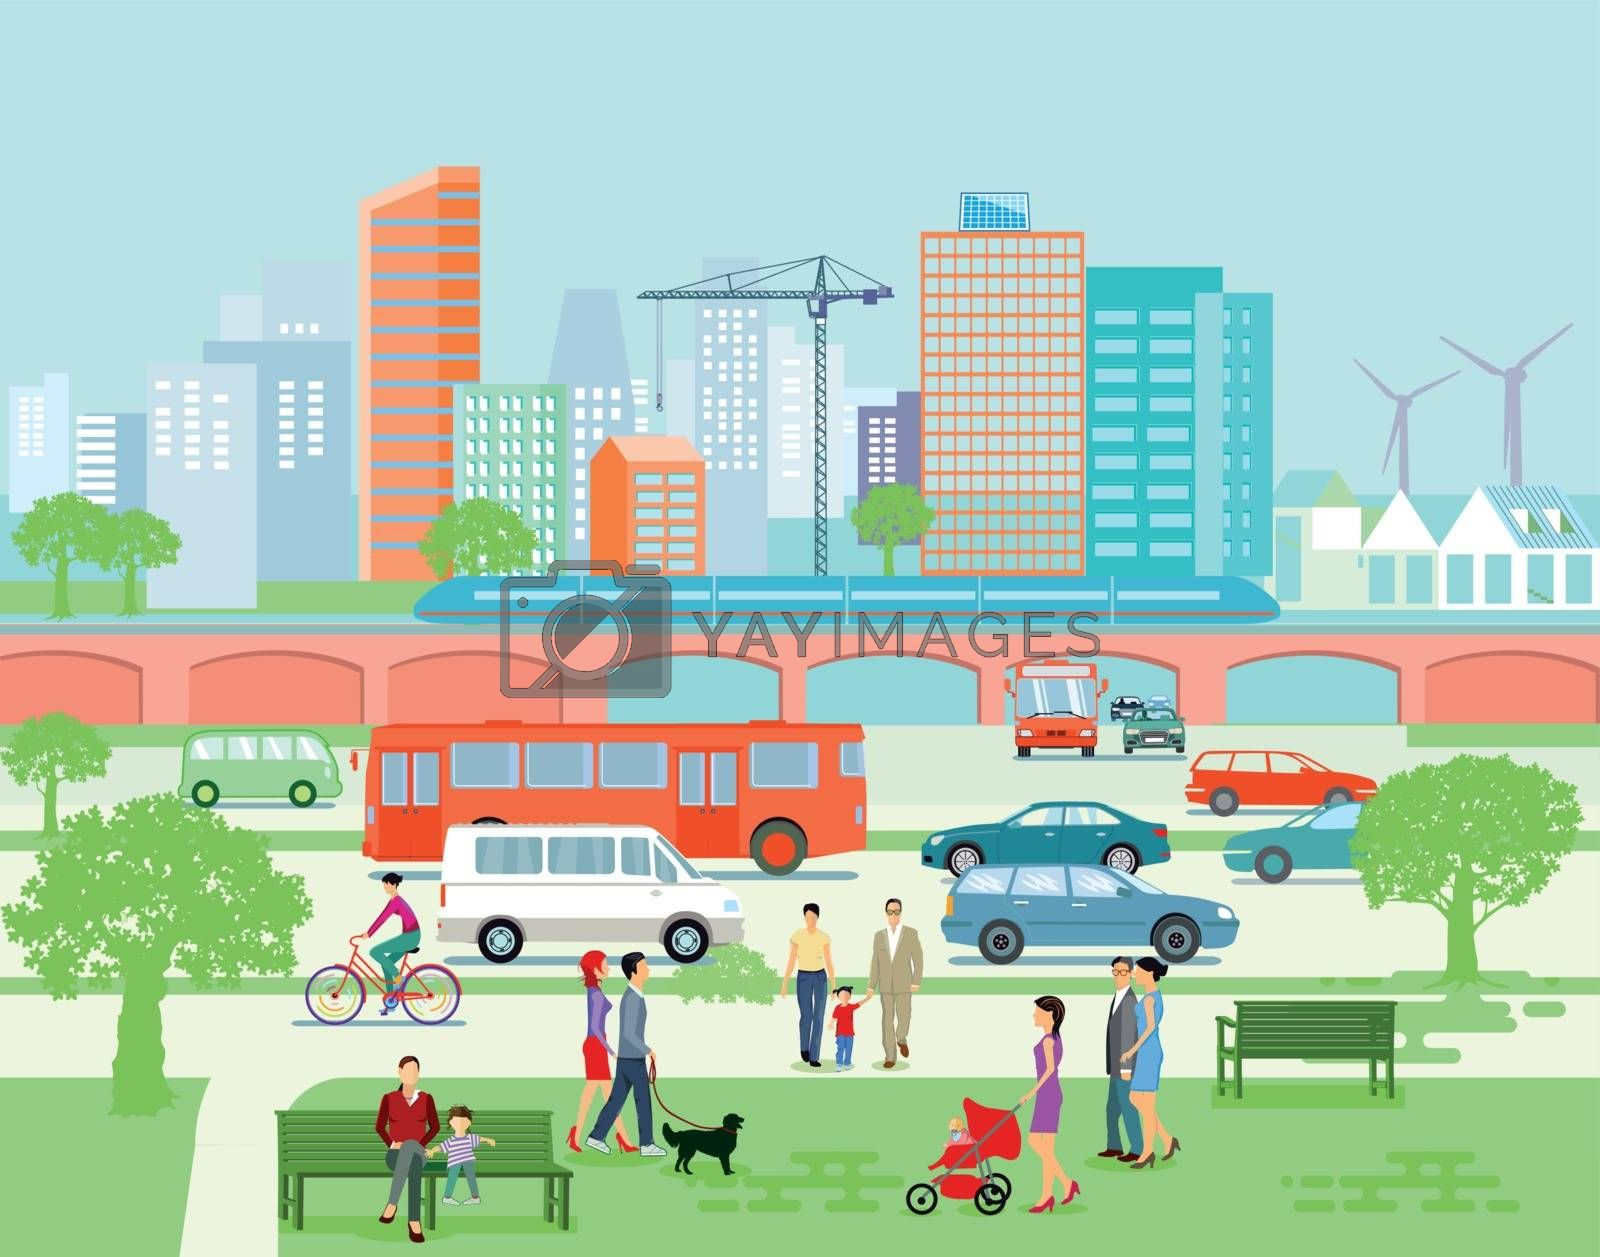 Royalty free image of Large city panorama with road traffic and pedestrians by scusi